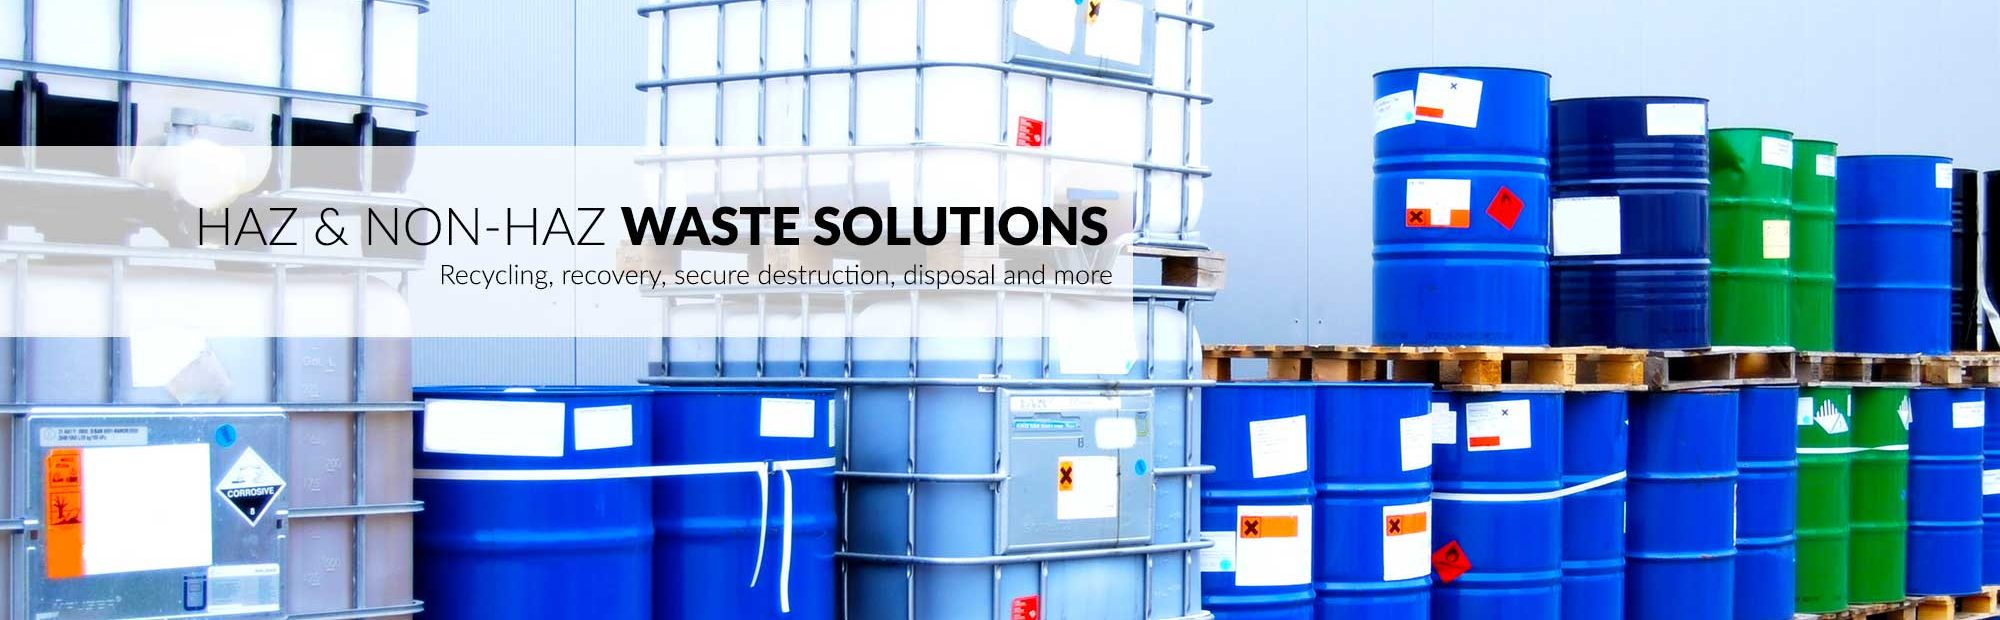 Waste Management Services and Solutions